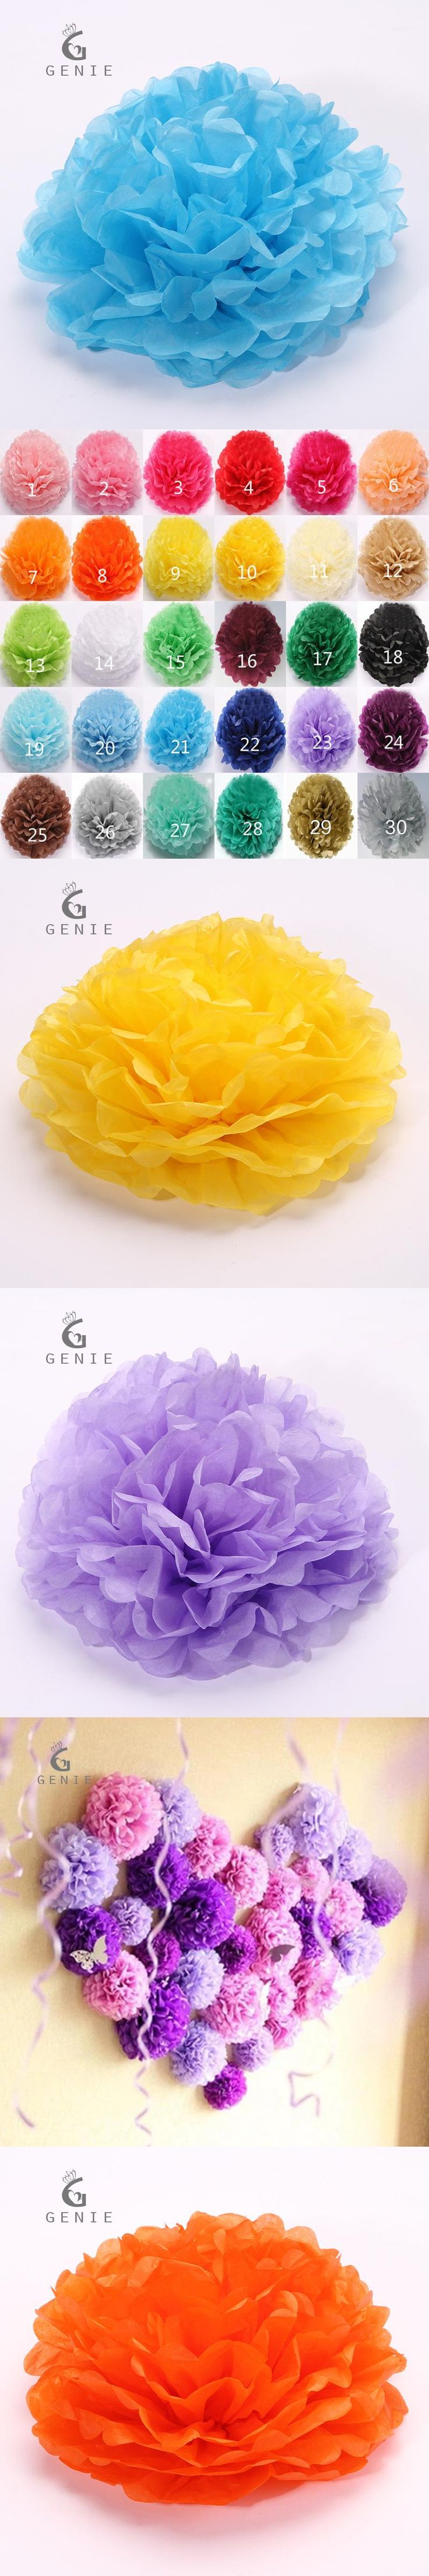 Genie Tissue Paper Pom Poms Wedding Party Decor Paper Ball Flower For  Wedding Home Party DIY Car Decoration Cheap